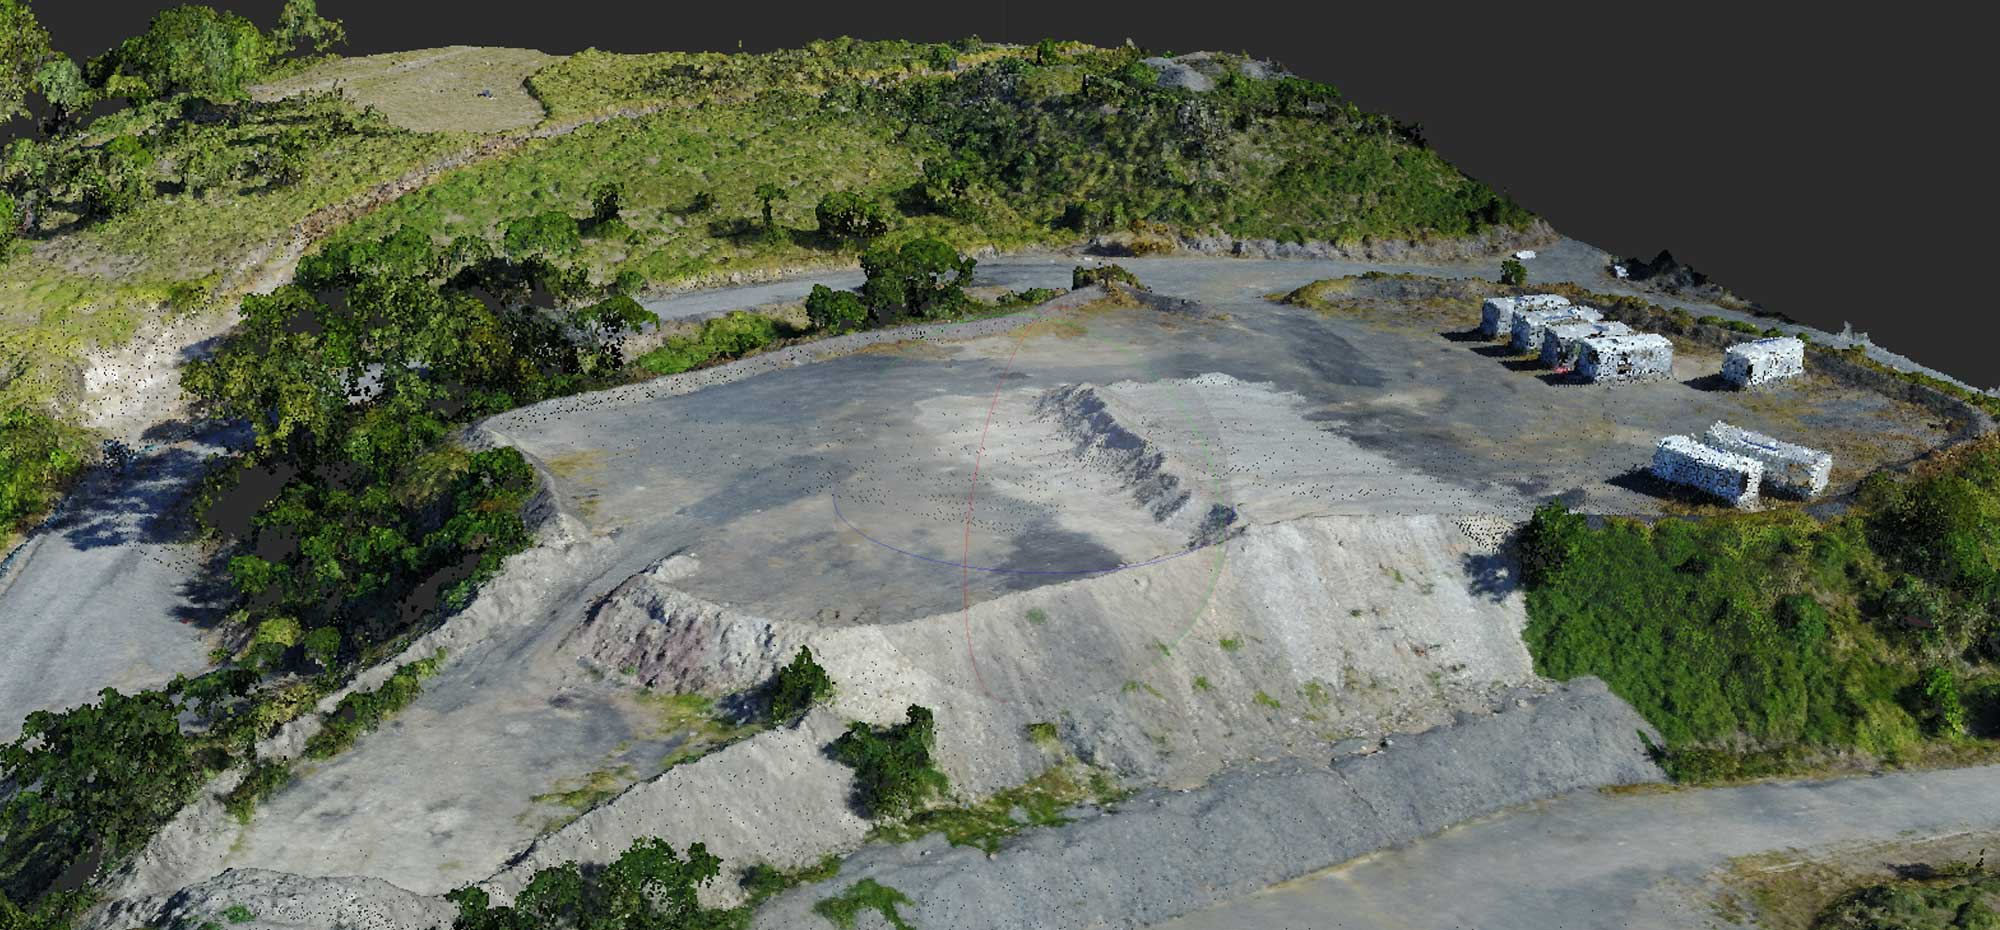 MavicPro Drone Mapping produces point cloud model with 75 million points